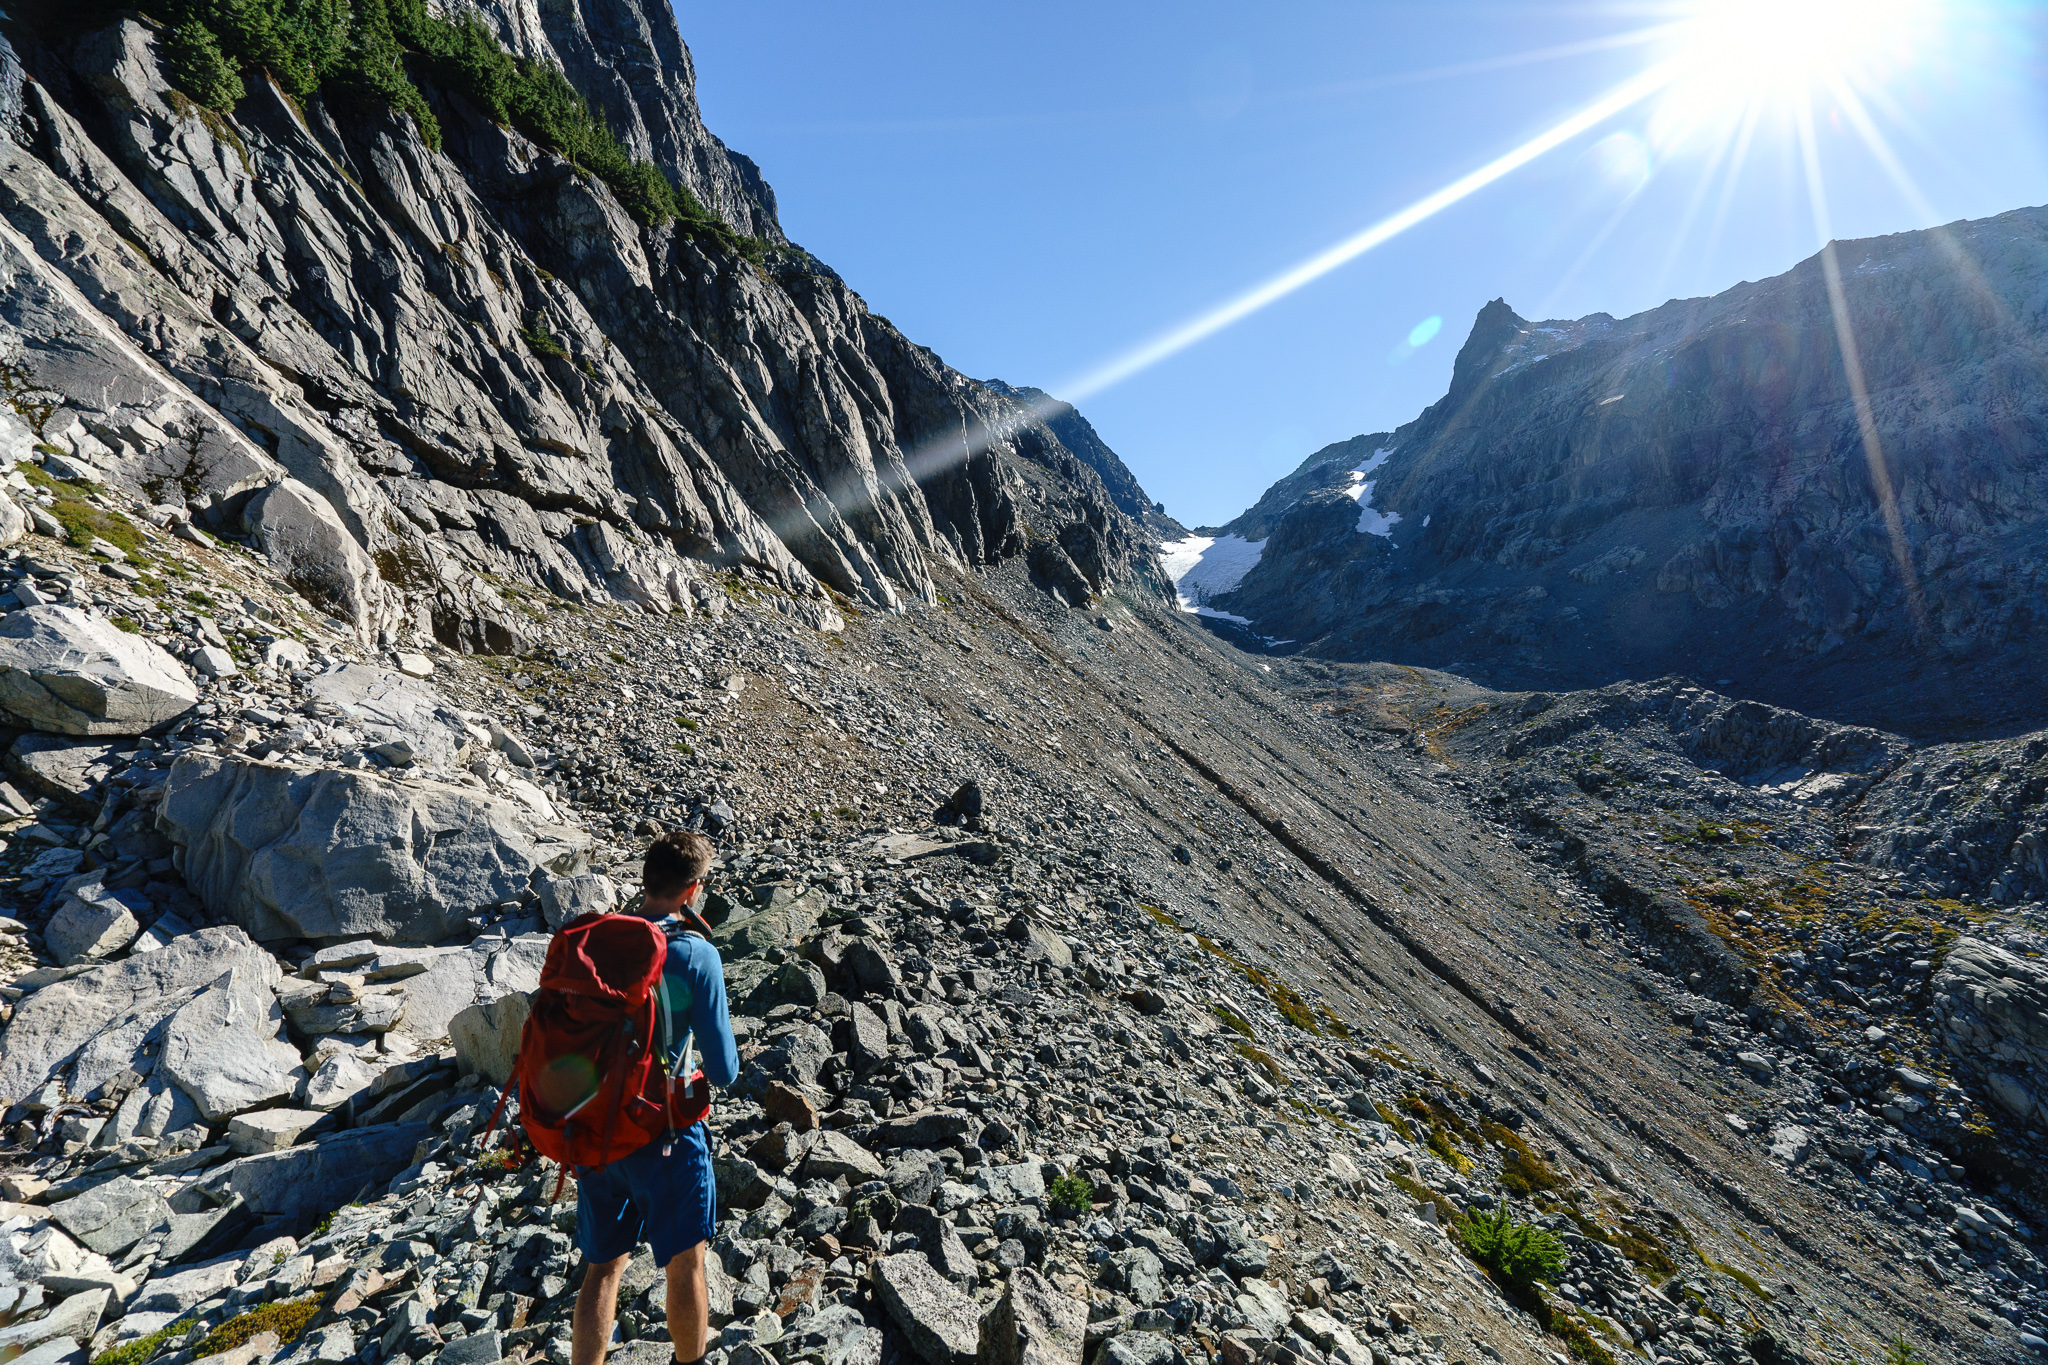 Nasty scree field. Don't be like us. Go down to the gully instead.